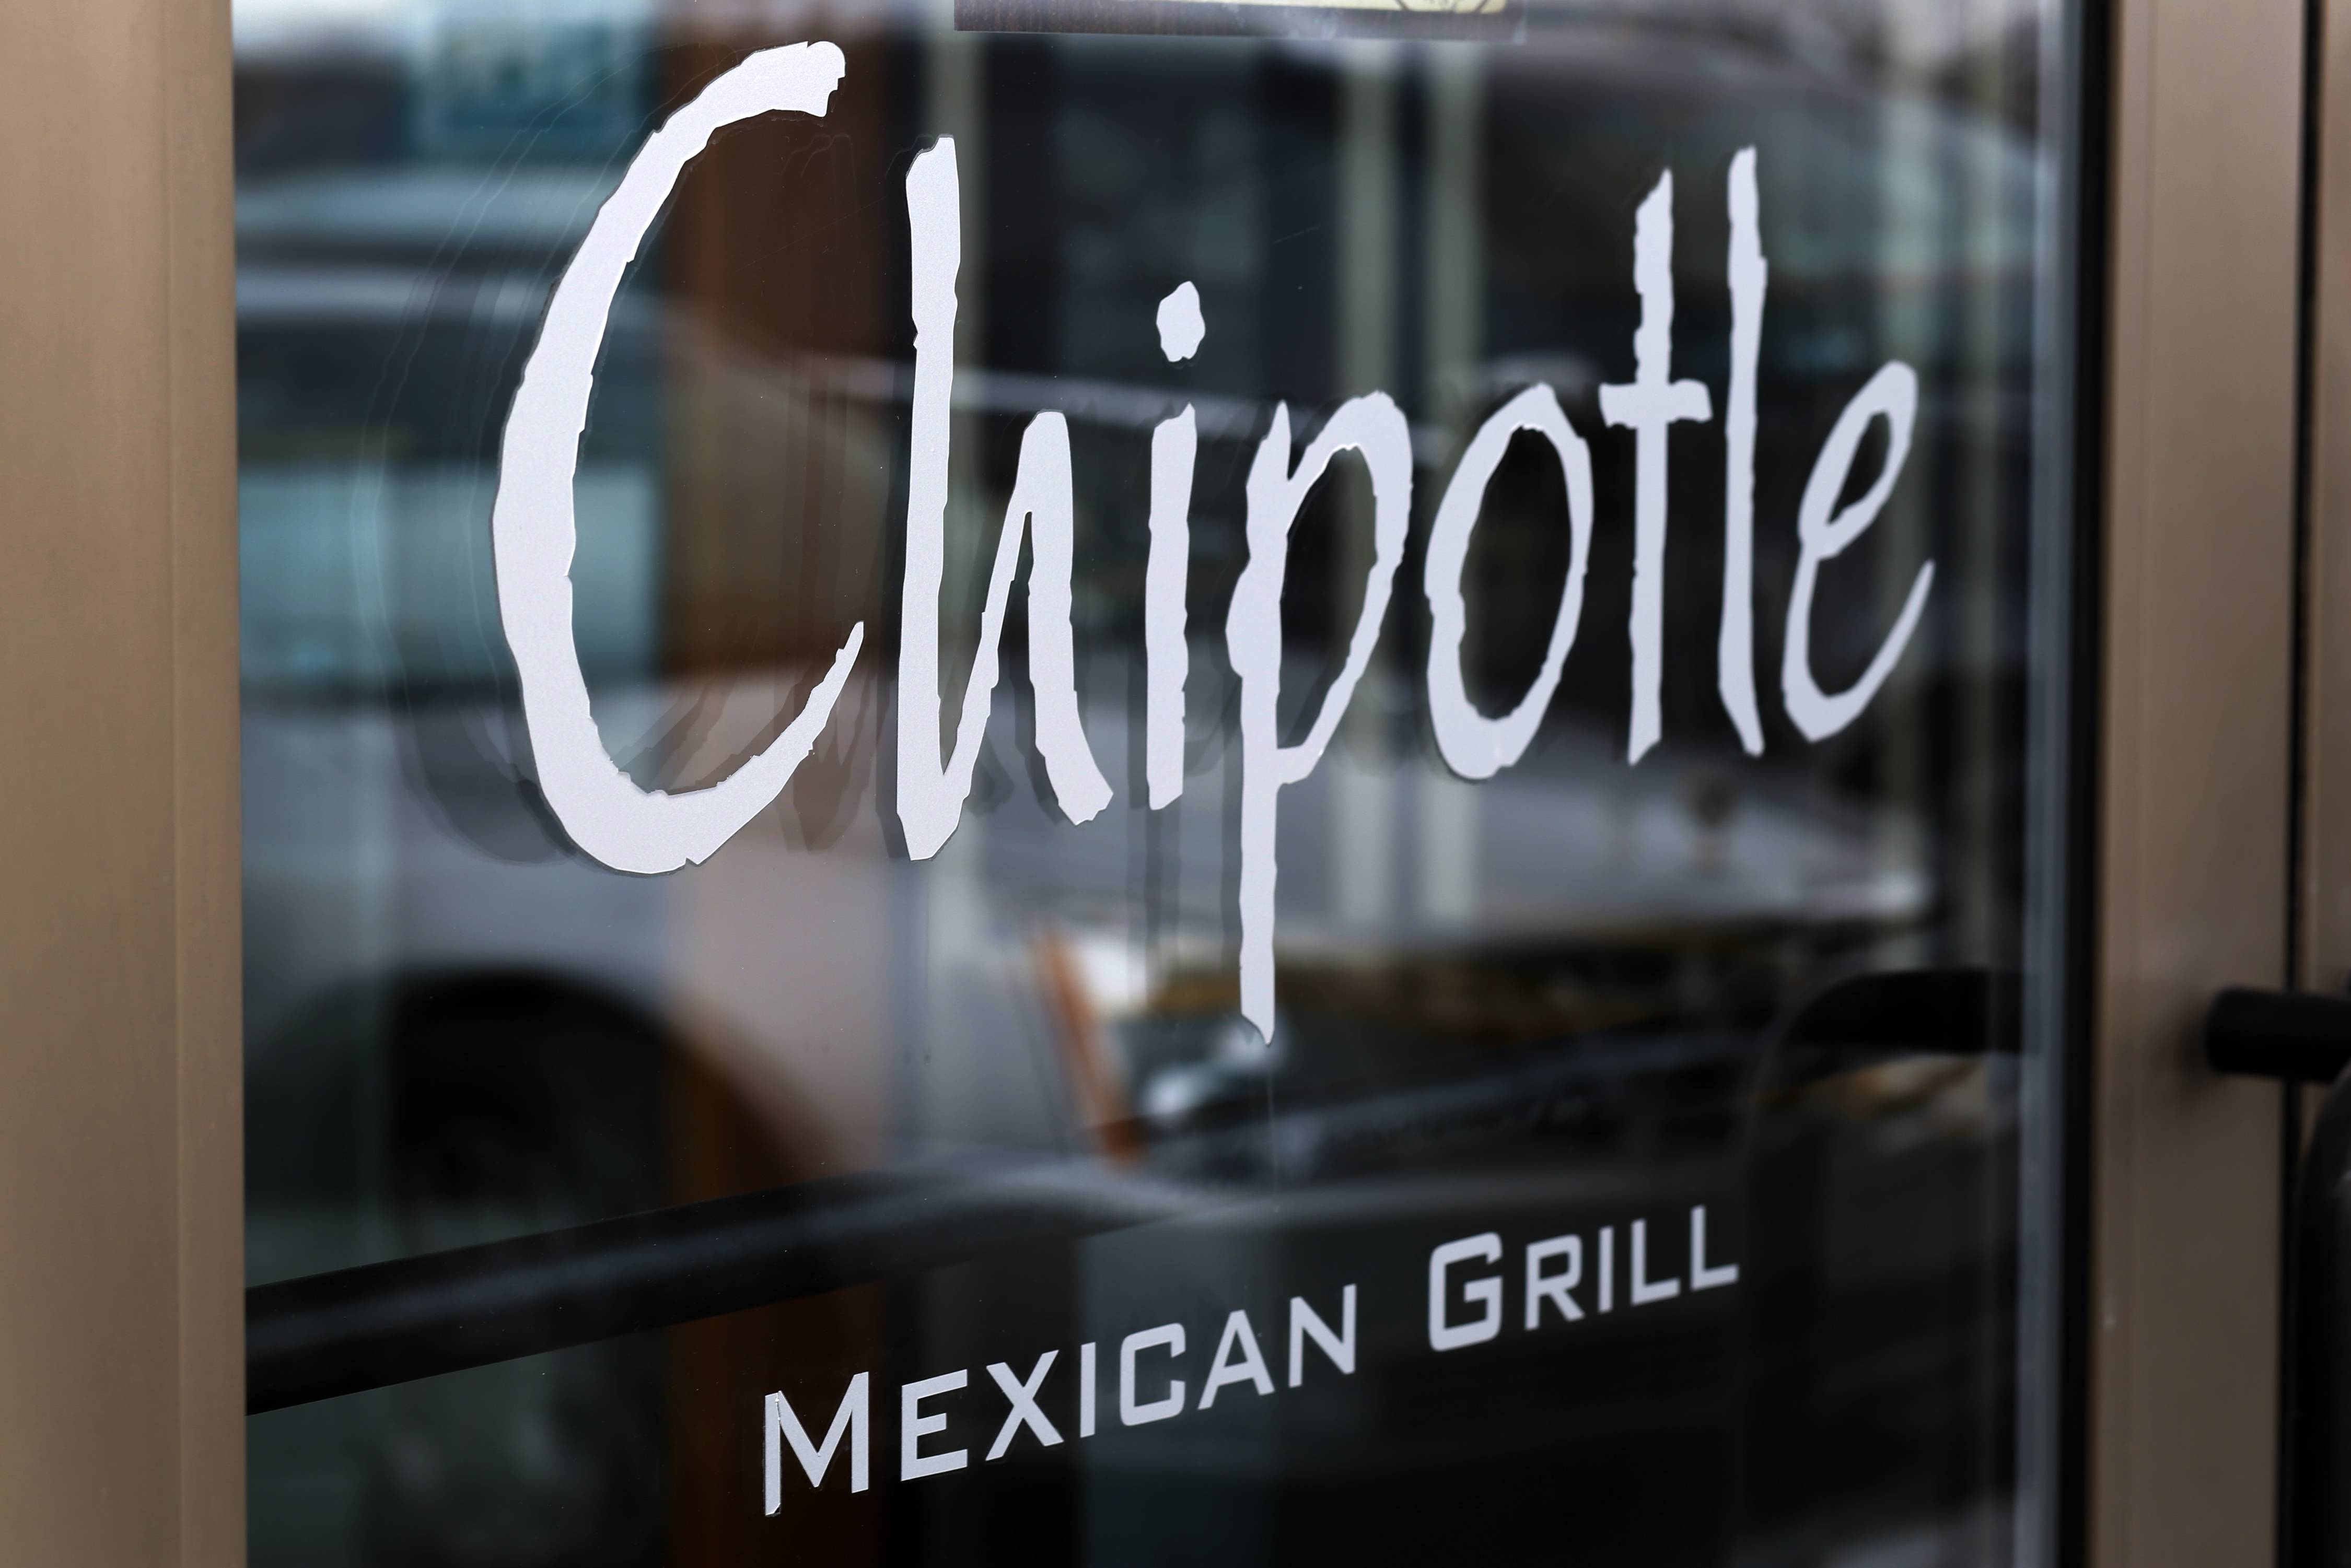 Mexican food chain Chipotle's first-quarter net income rose 8 percent as higher costs offset a sales surge as more customers bought its burritos and other fare.